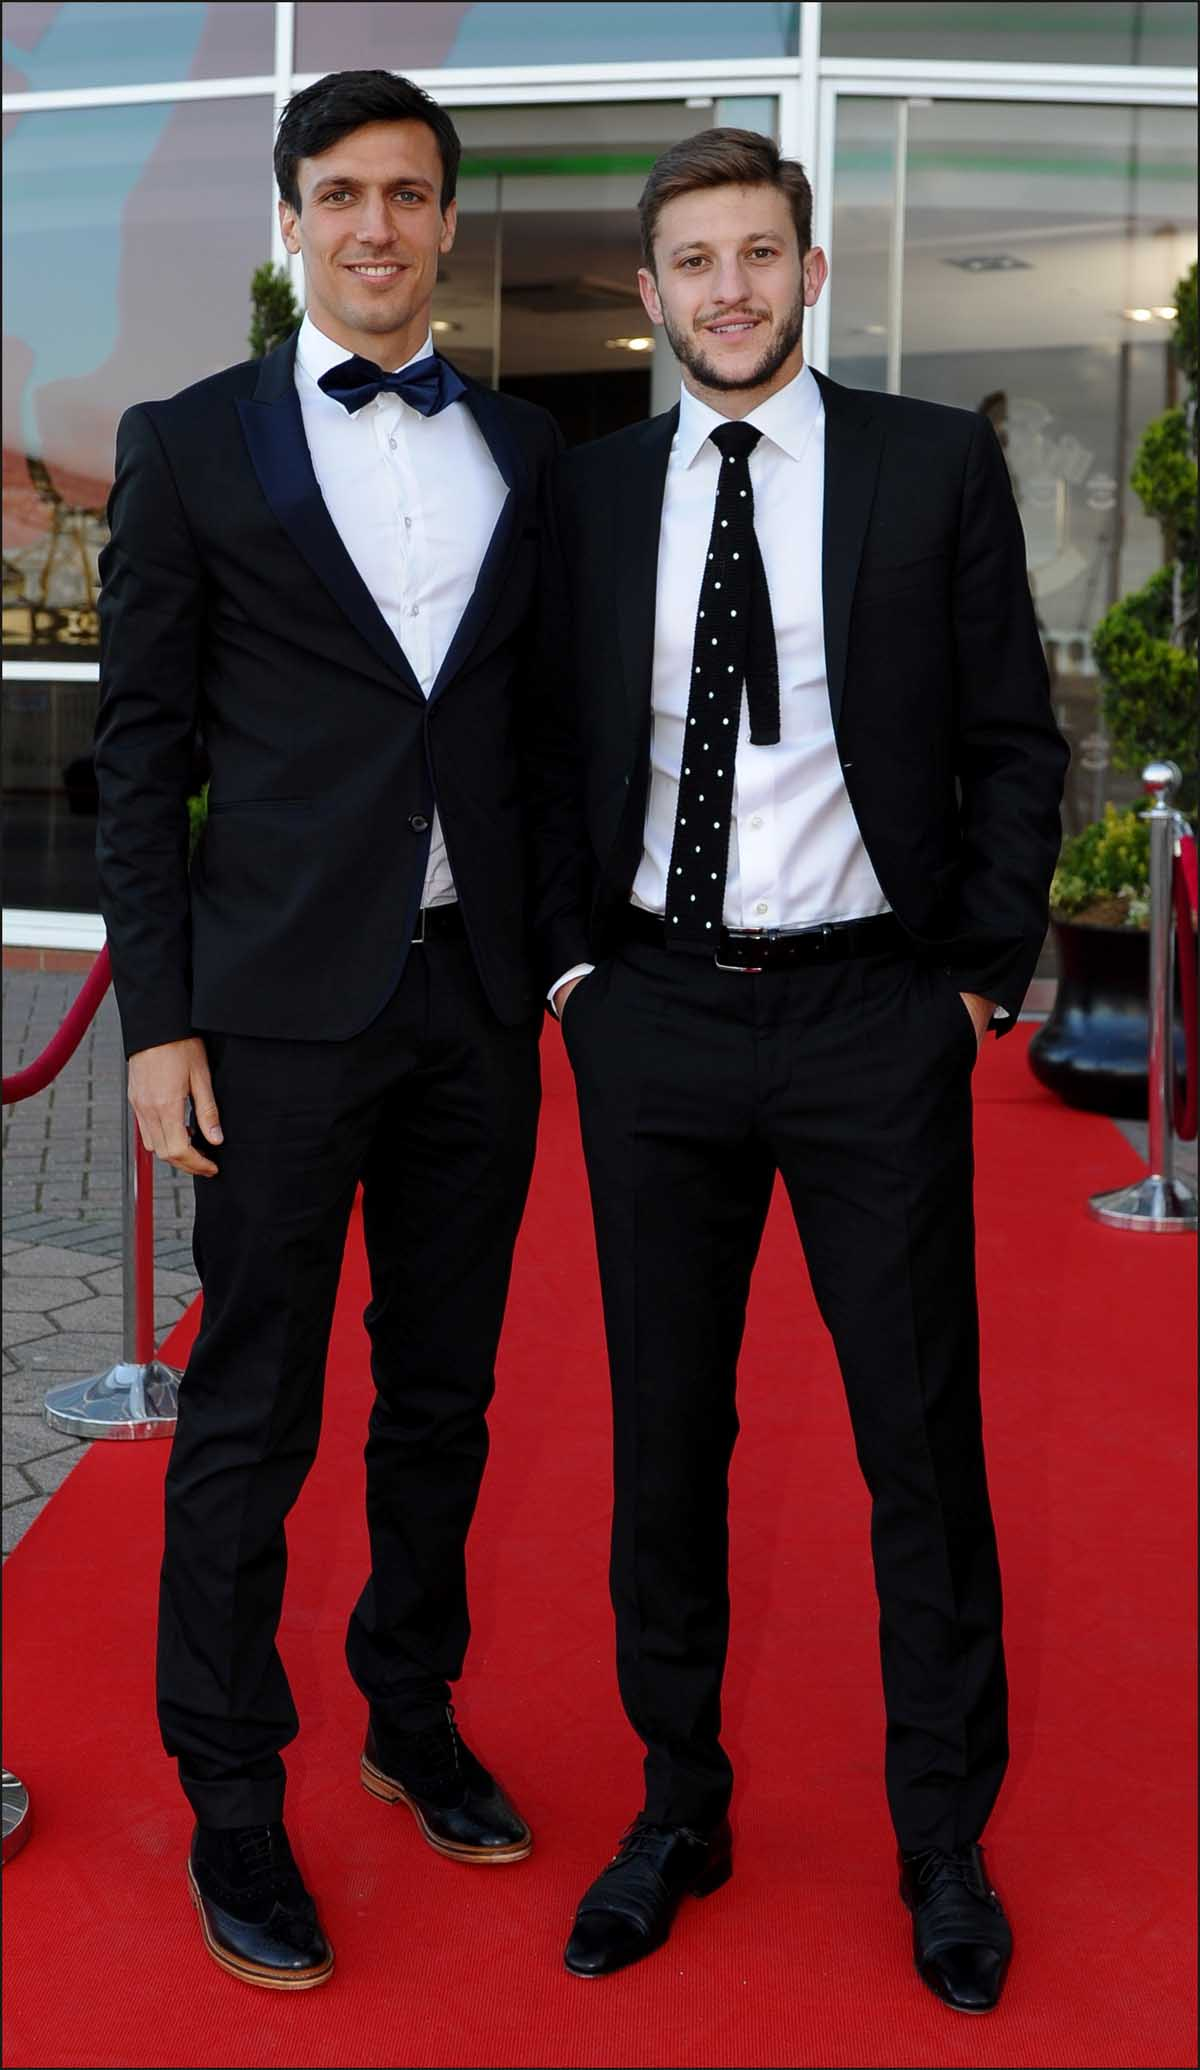 Adam Lallana arrives for the awards with Jack Cork.